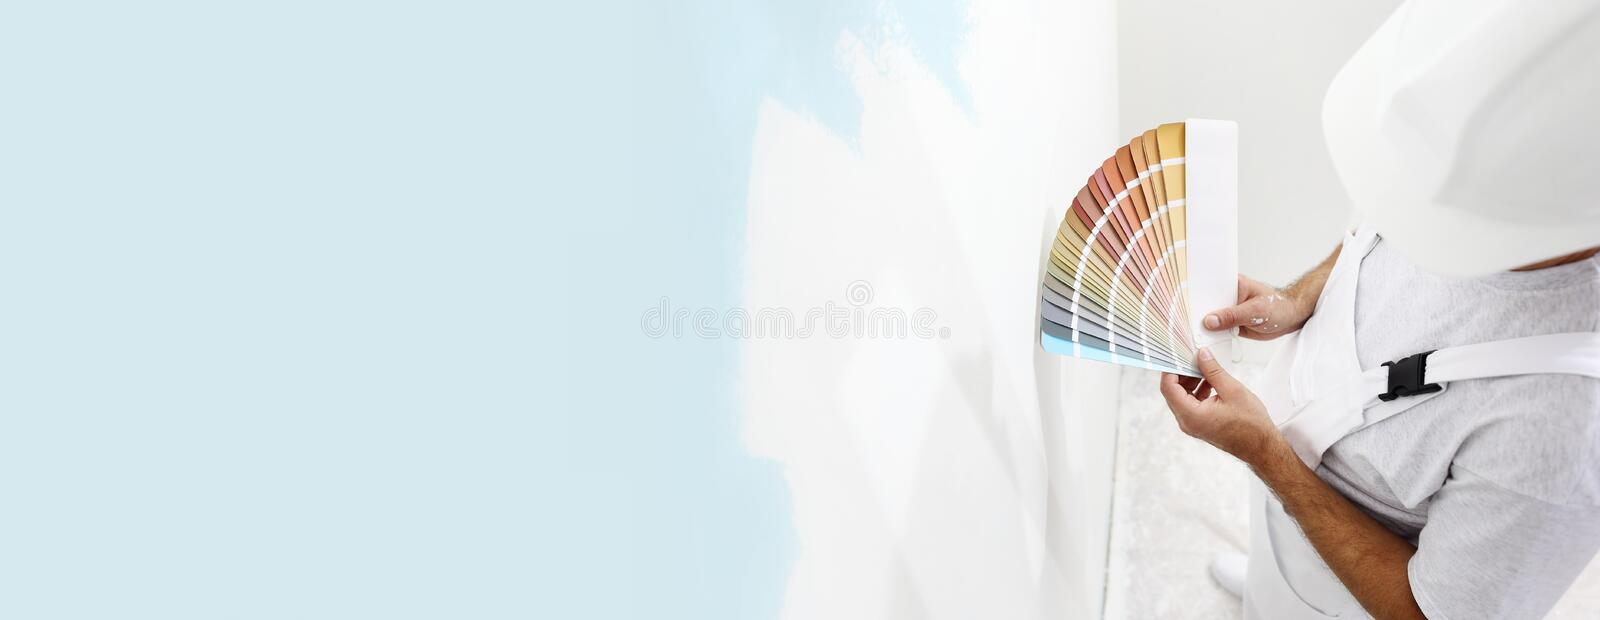 Painter man with color swatches in your hand, choice of colors concept, on big blank wall for copy space and web banner. Background stock image